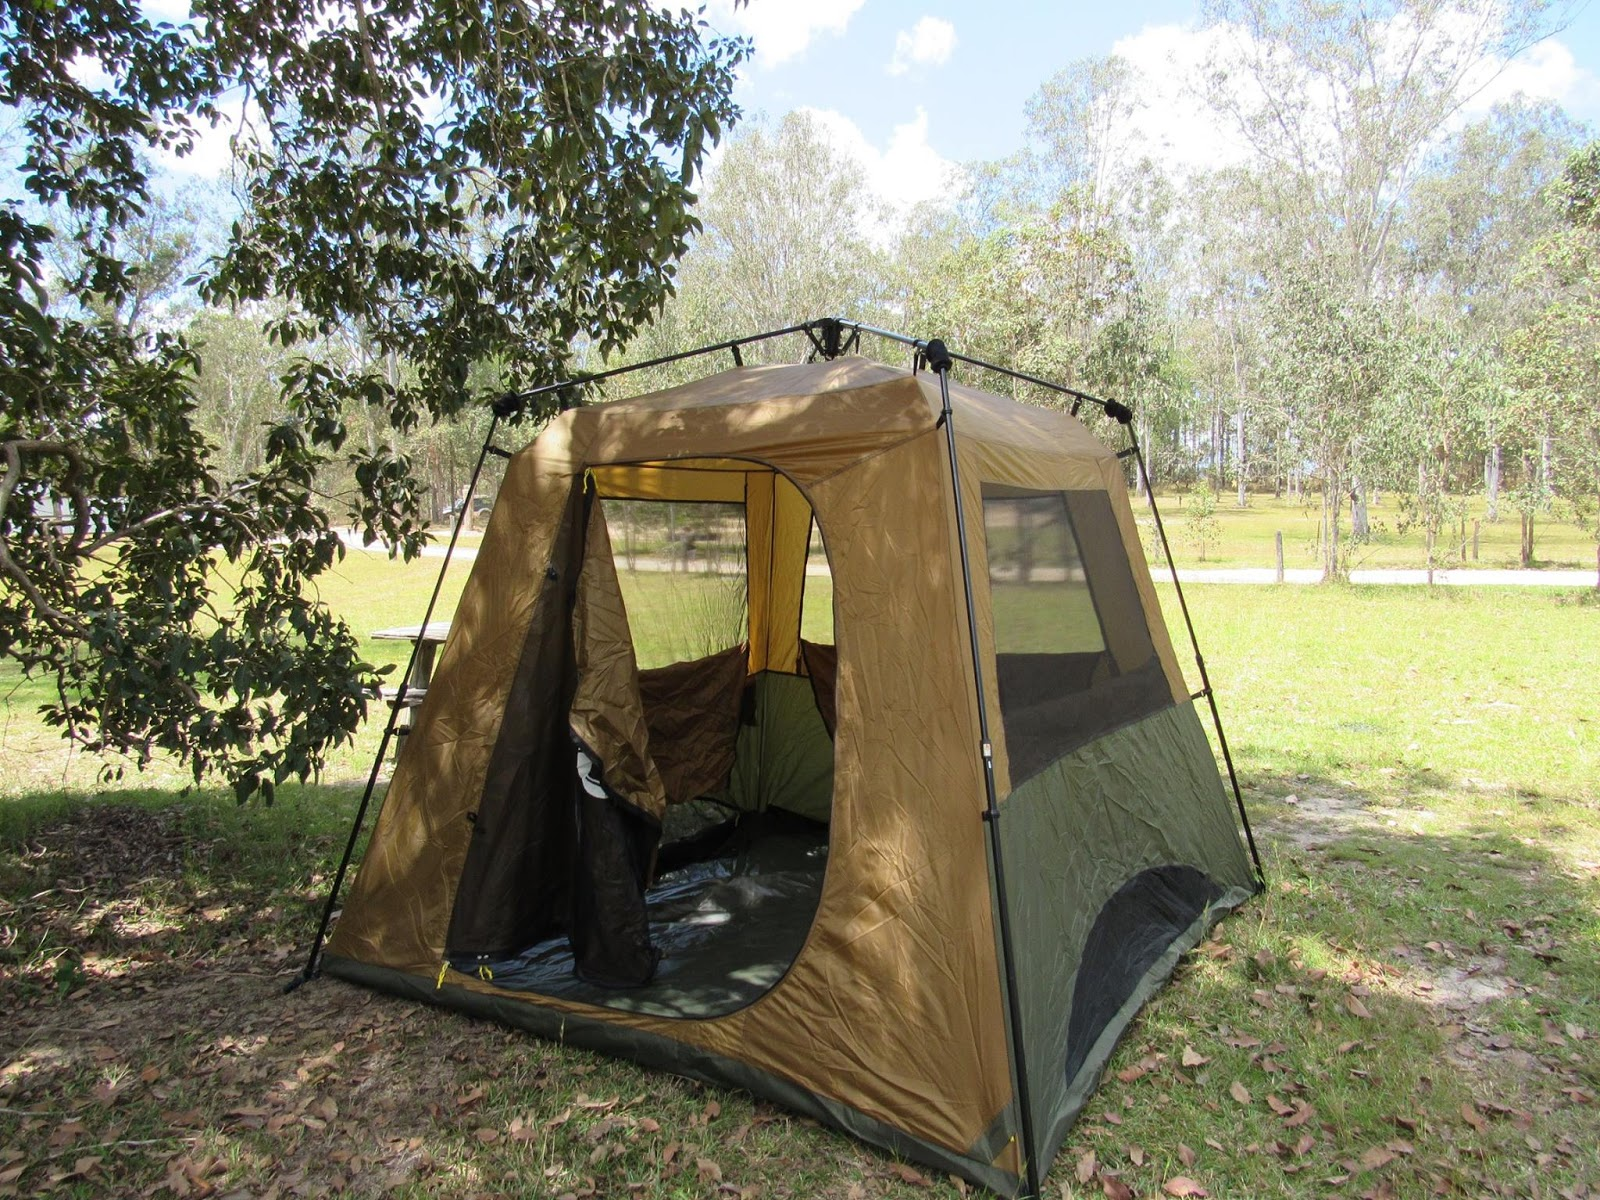 The Coleman Gold Instant Up 4 tent inner fully pitched hold this space! It goes down again in a moment. & Tentworld: Coleman Gold Series Instant Up Tent Maiden Voyage Review